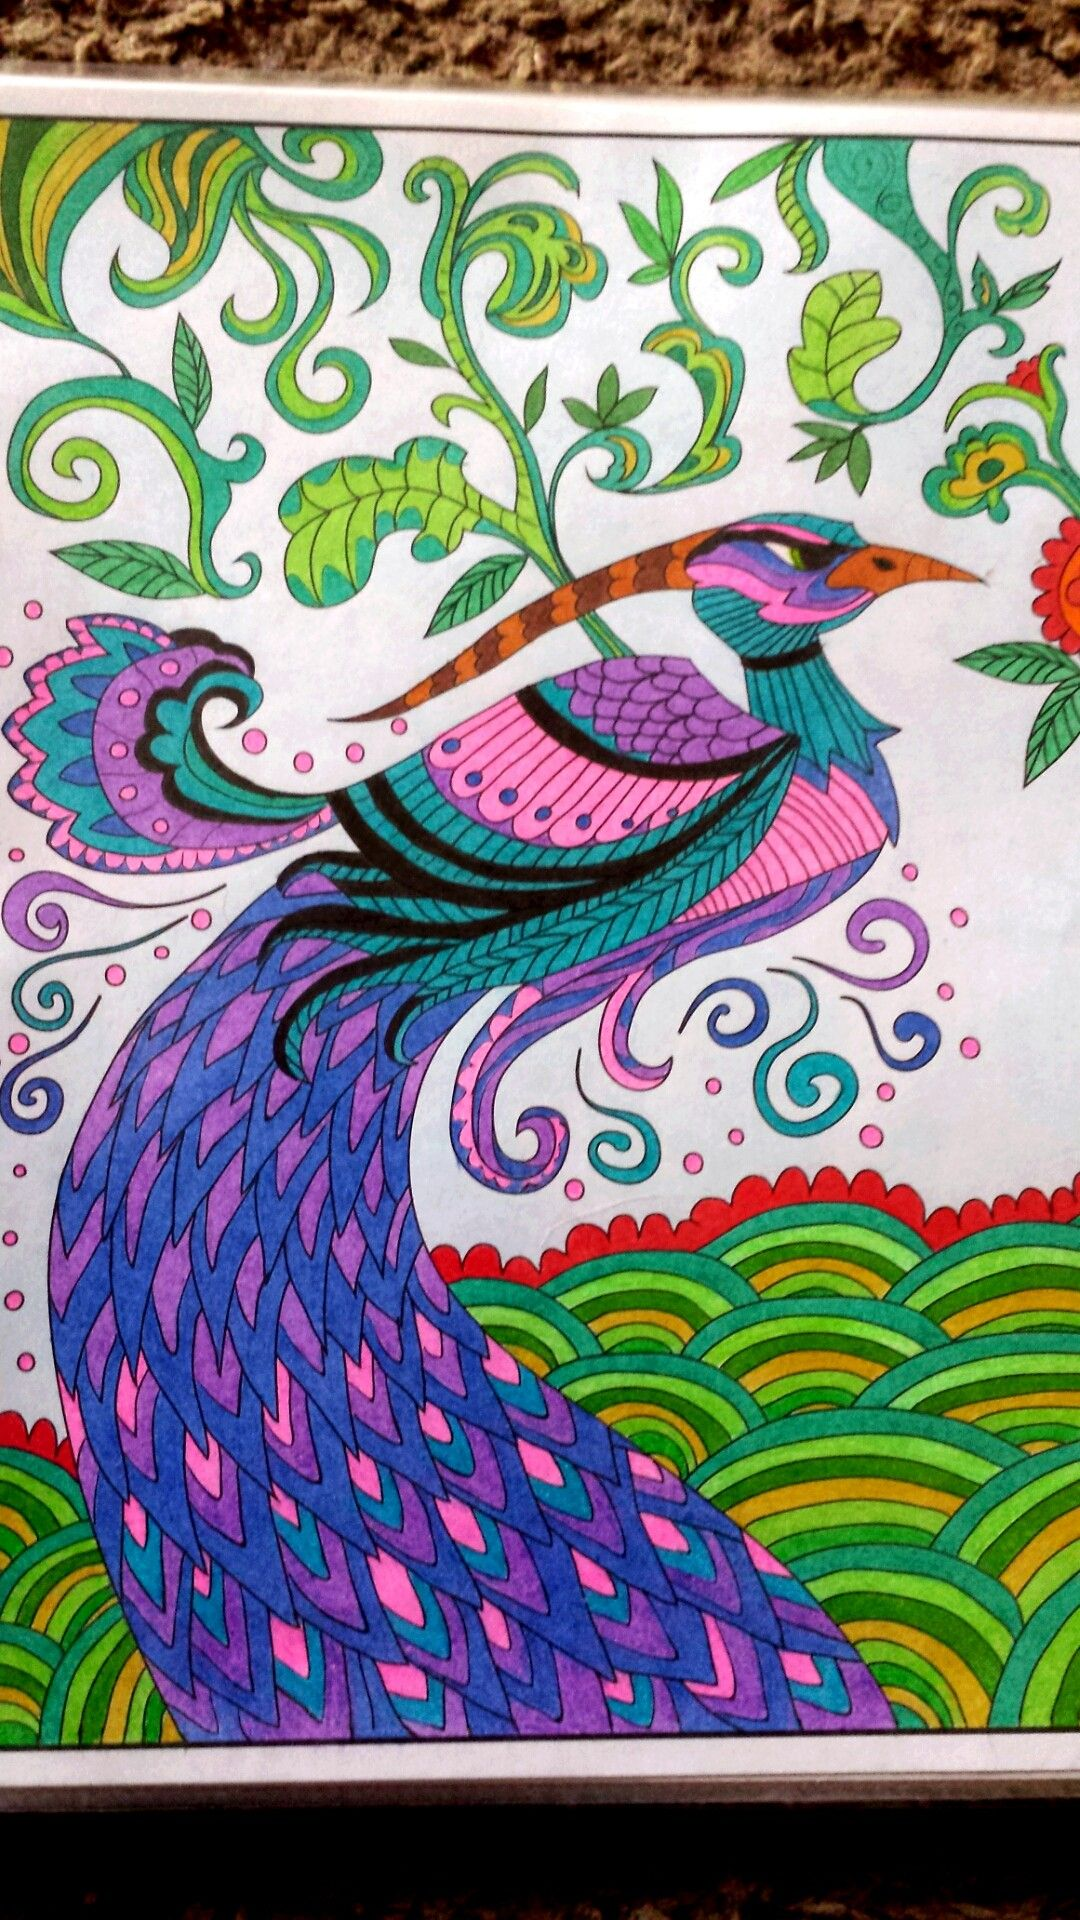 Creatures Of Beauty Coloring Book Coloring Books Creation Coloring Pages Colorful Art